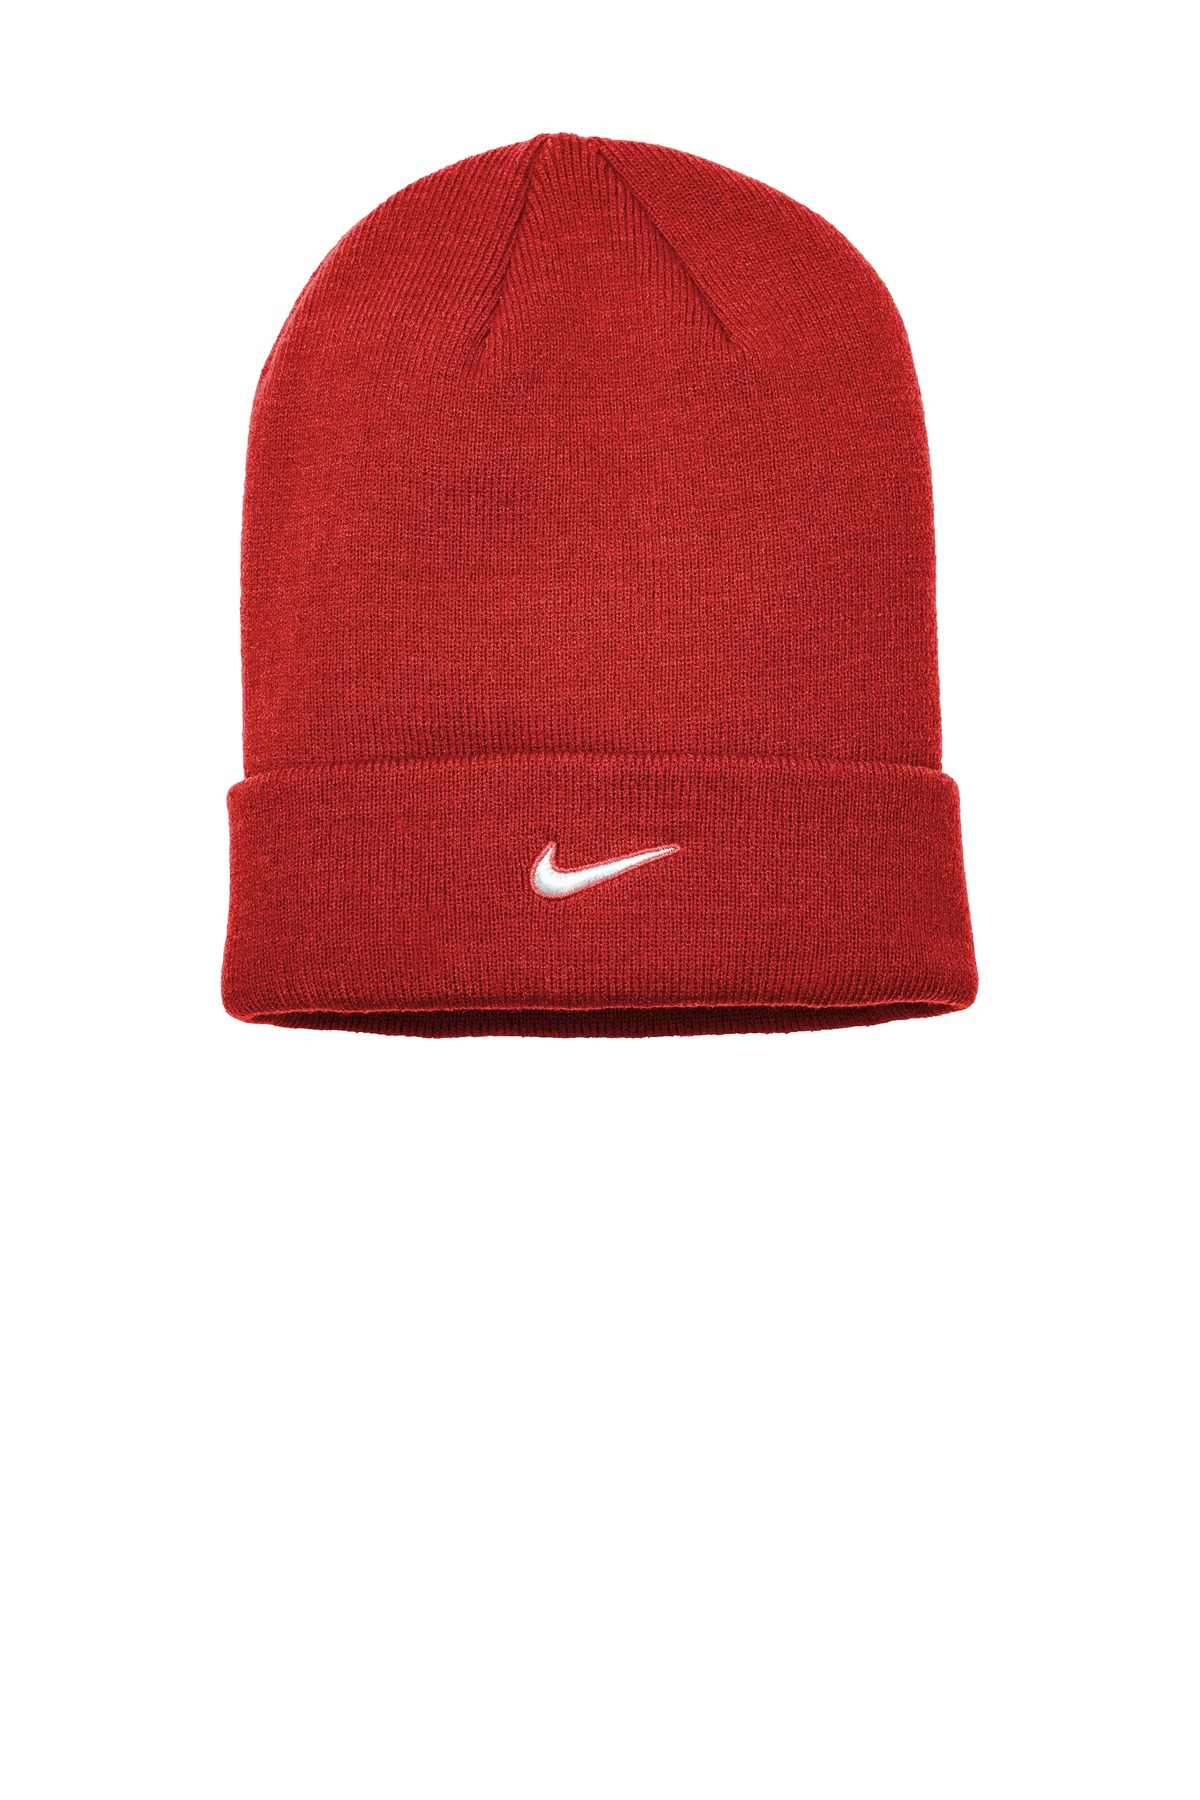 Nike Sideline Beanie 867309 - University Red